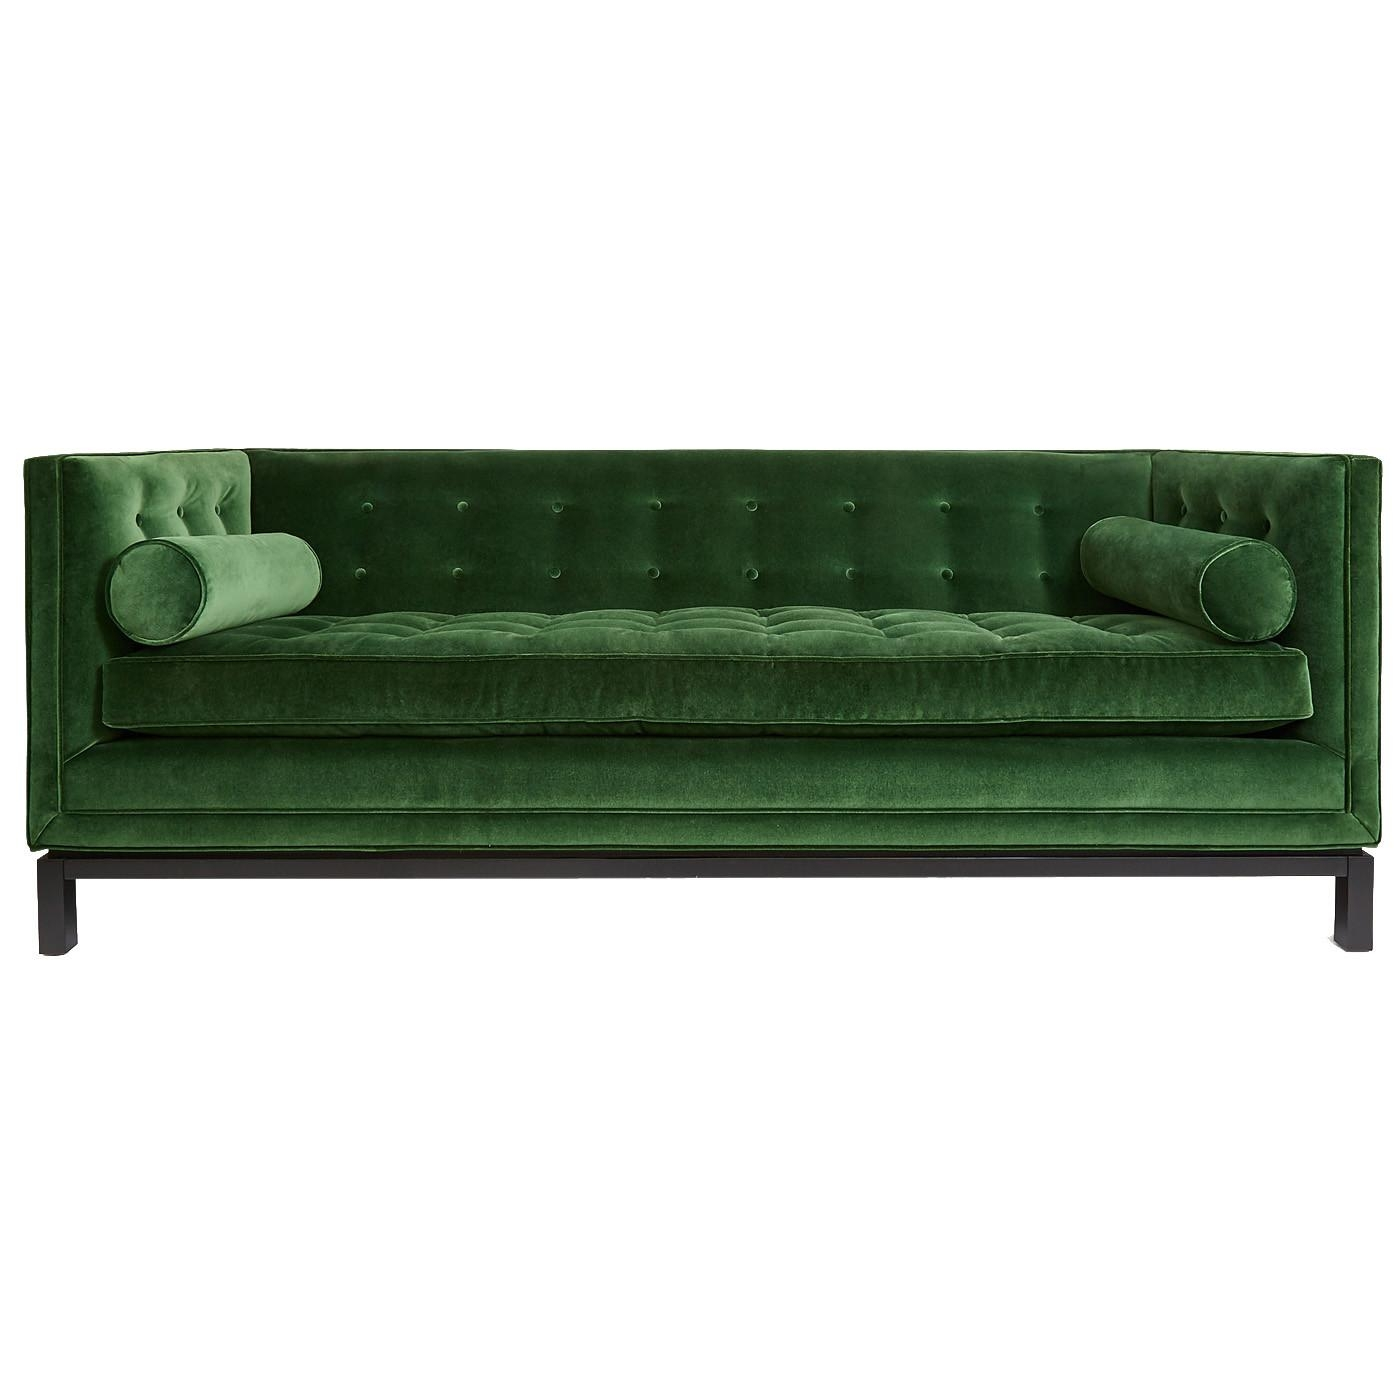 Furniture: Burgundy Sleeper Sofa | Ava Velvet Tufted Sleeper Sofa Pertaining To Ava Velvet Tufted Sleeper Sofas (Image 4 of 20)